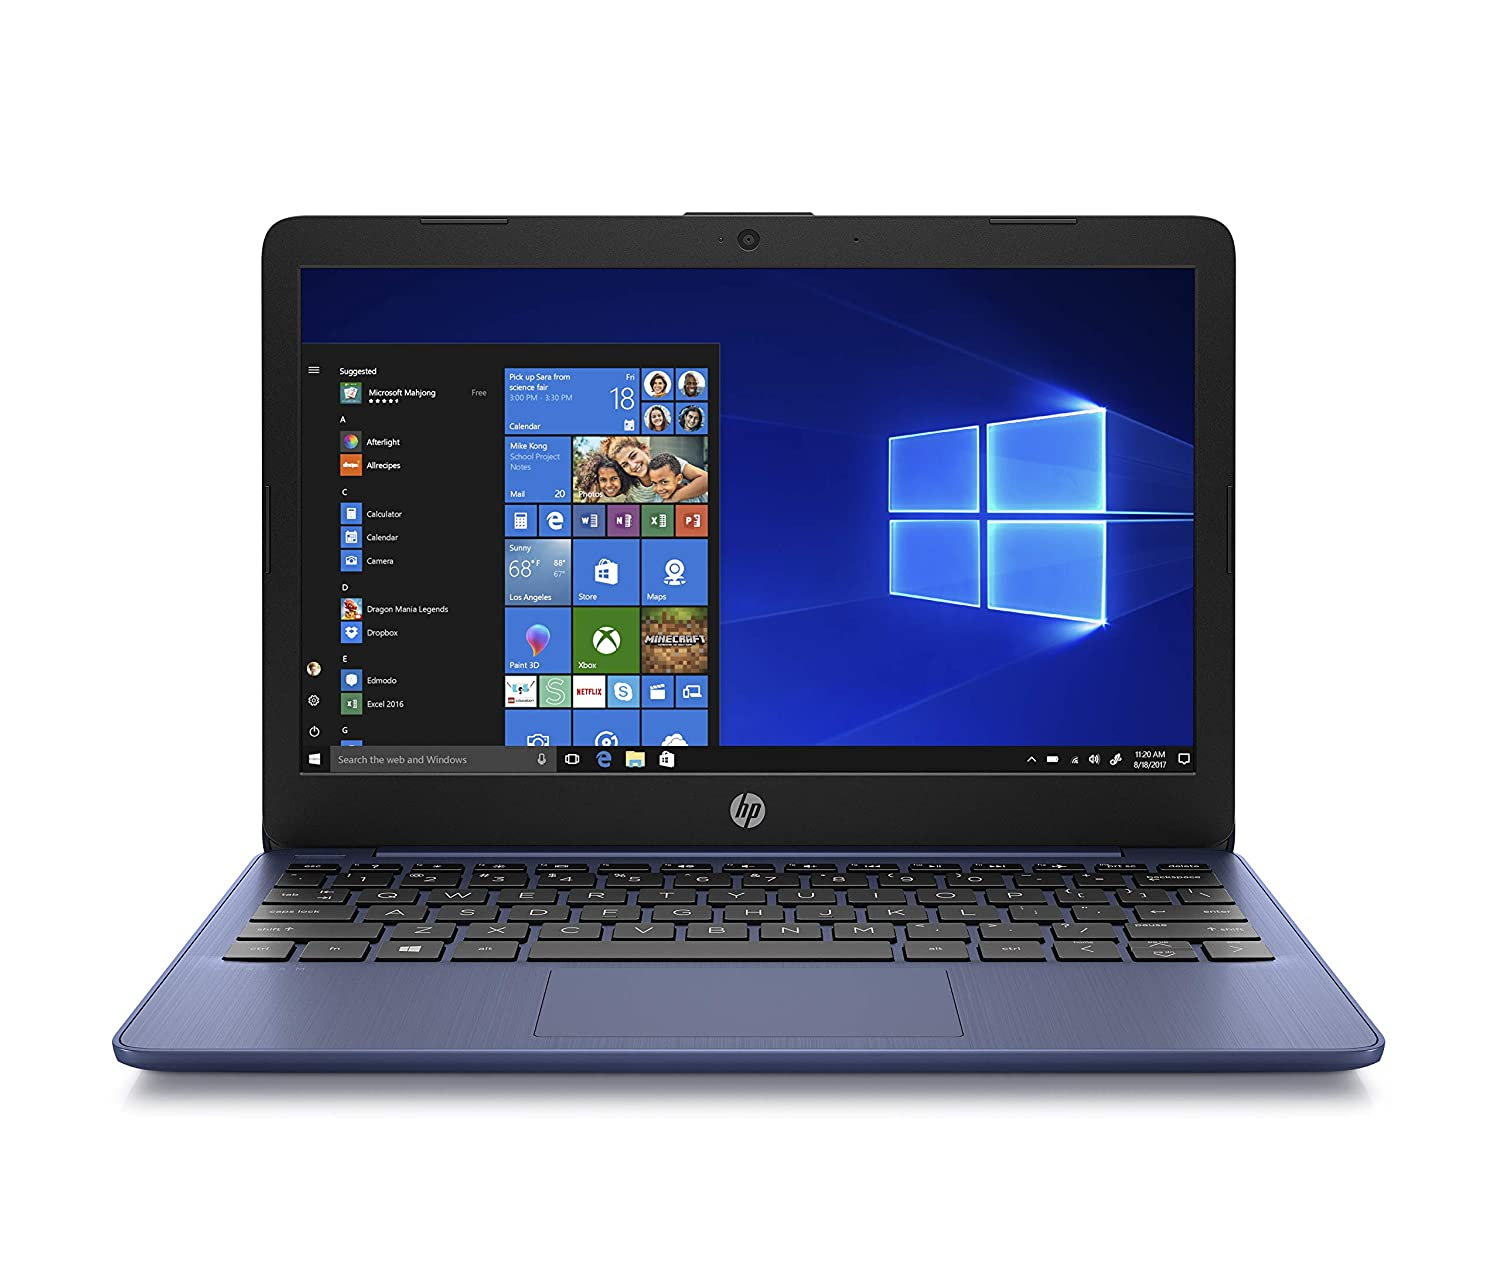 HP Stream 11-Inch Laptop, Intel X5-E8000 Processor, 4 GB RAM, 32 GB eMMC, Windows 10 Home in S Mode with Office 365 Personal and 1 TB Onedrive Storage for One Year (11-ak1010nr, Royal Blue)